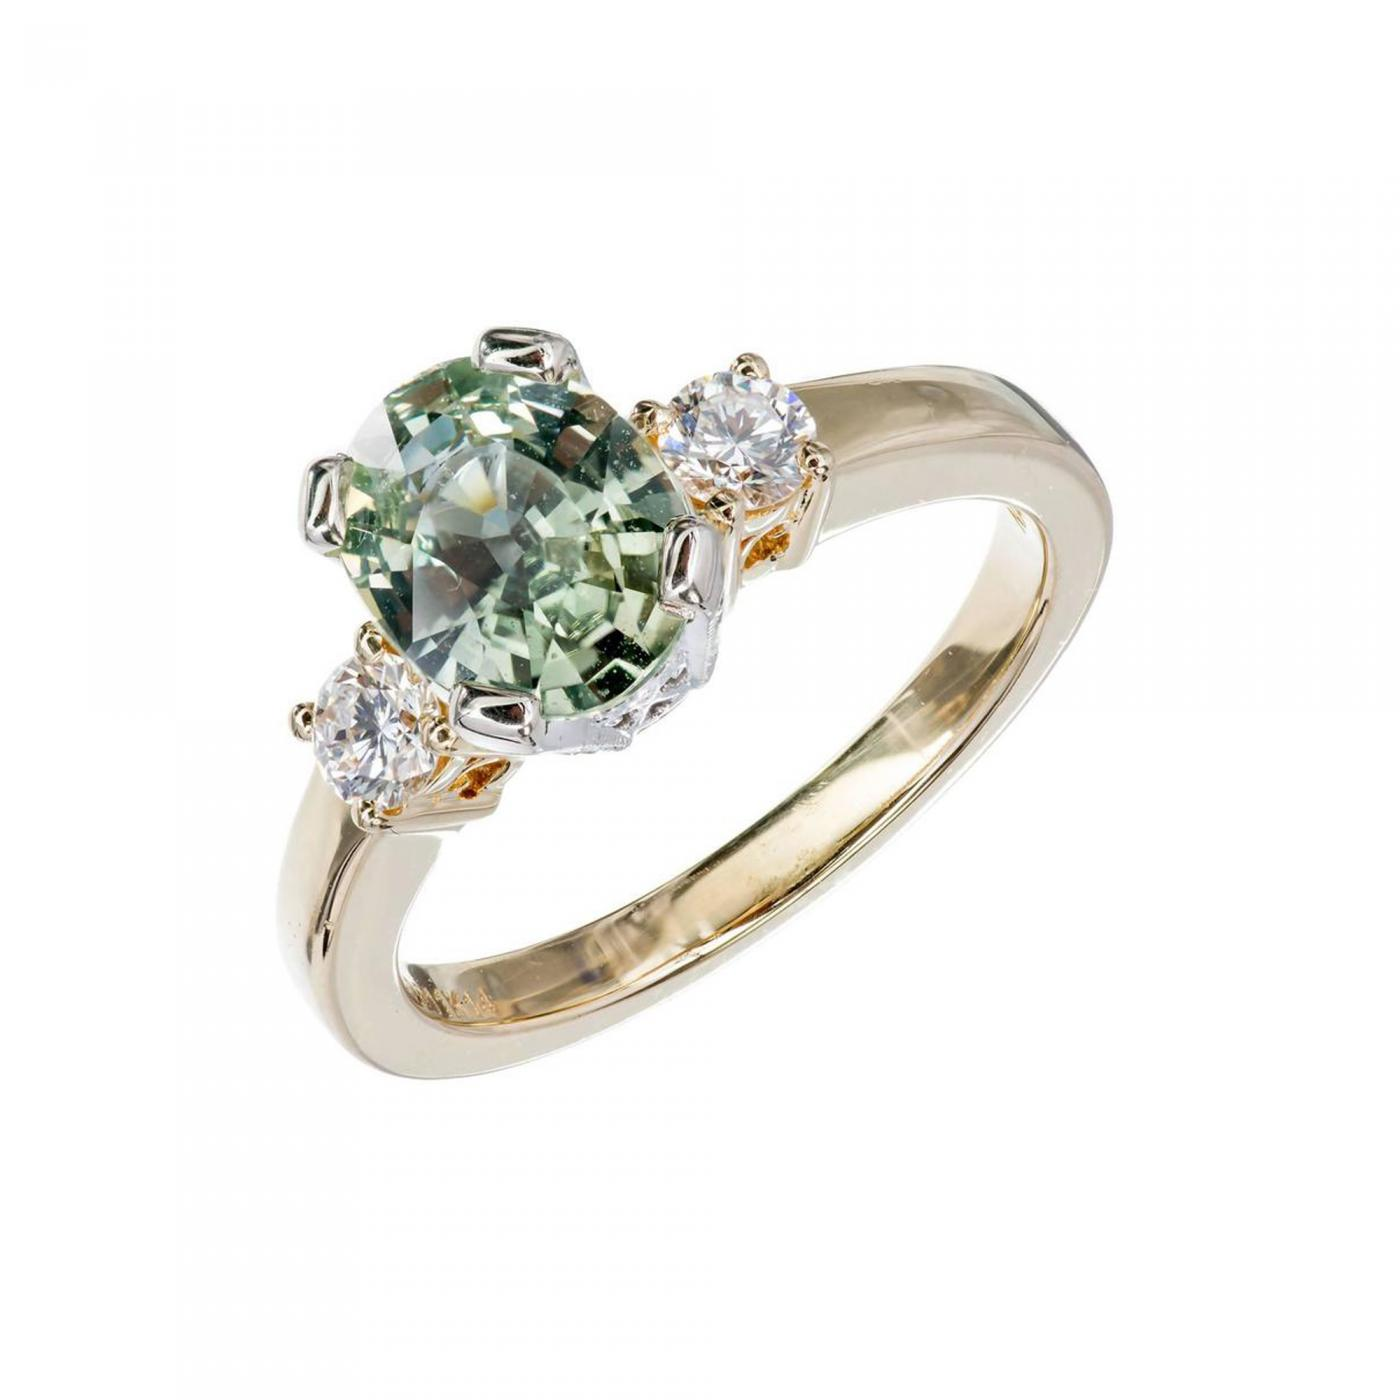 green engagement galleries rings emerald goldsmiths stone modern cut claw solitaire ring mccaul coloured gold rose